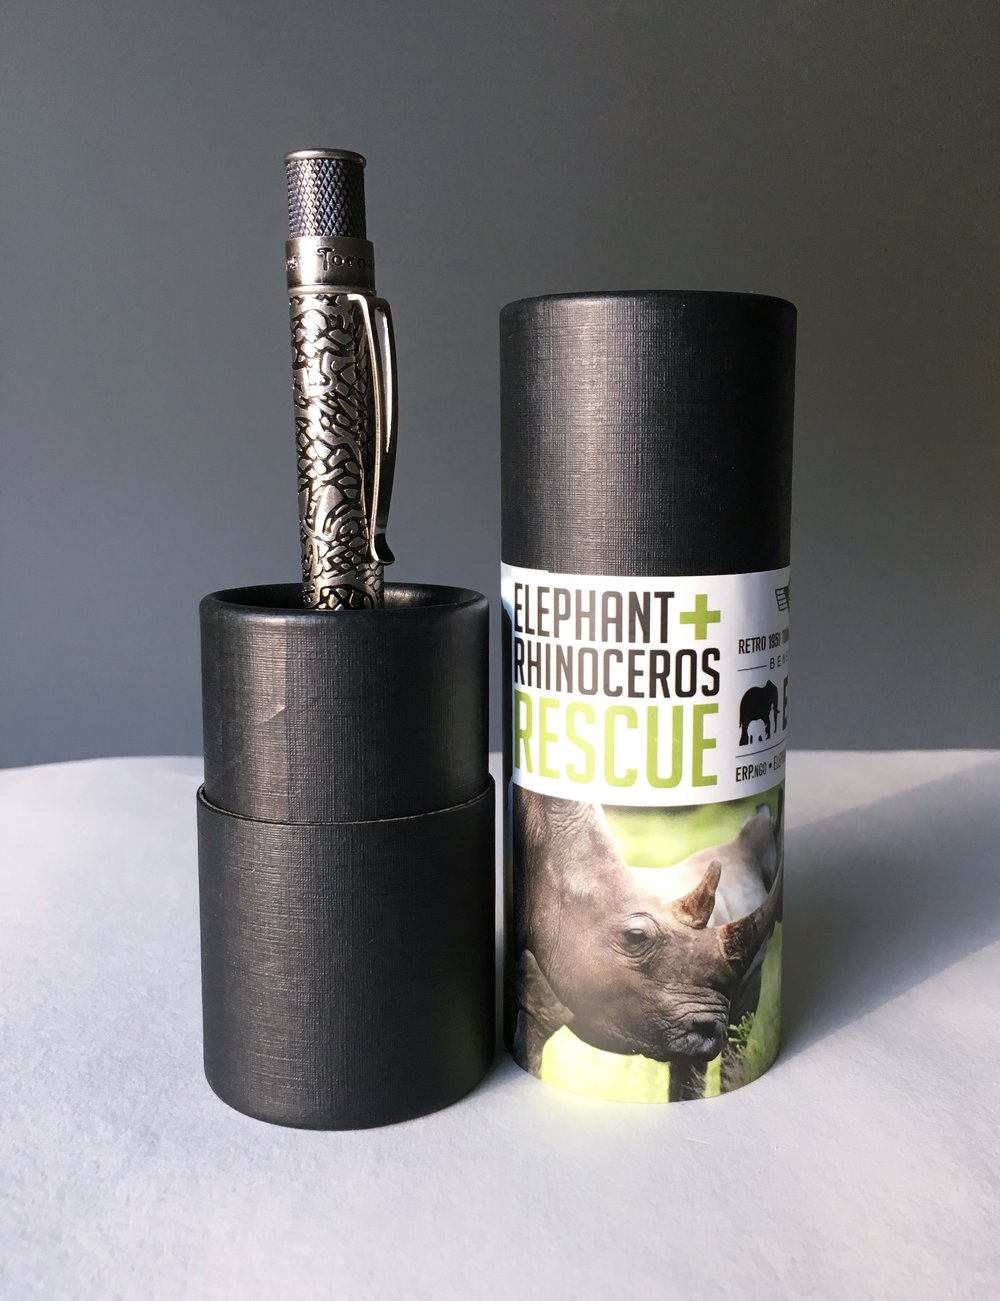 Retro 51 Elephant and Rhino Rescue